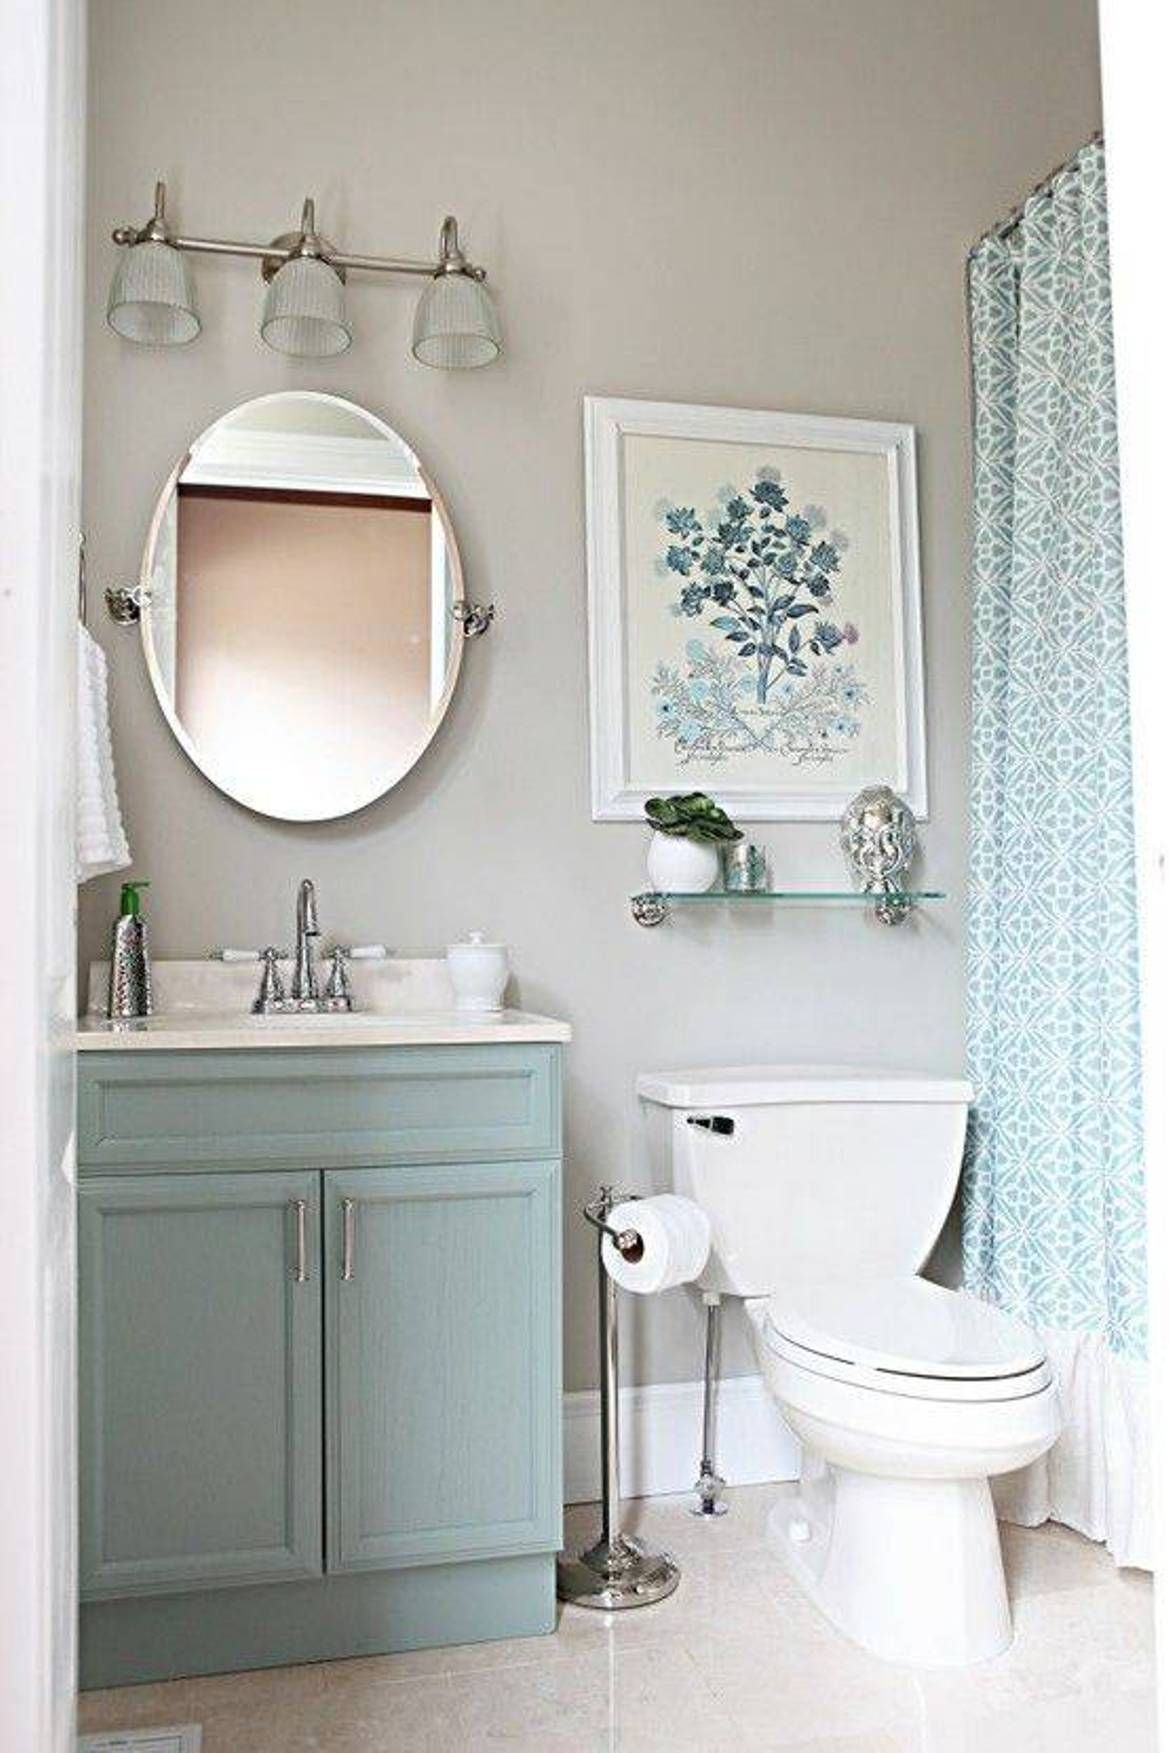 Cheap Bathroom Makeovers Uk nice simple bathroom makeovers http://www.solutionshouse.co.uk